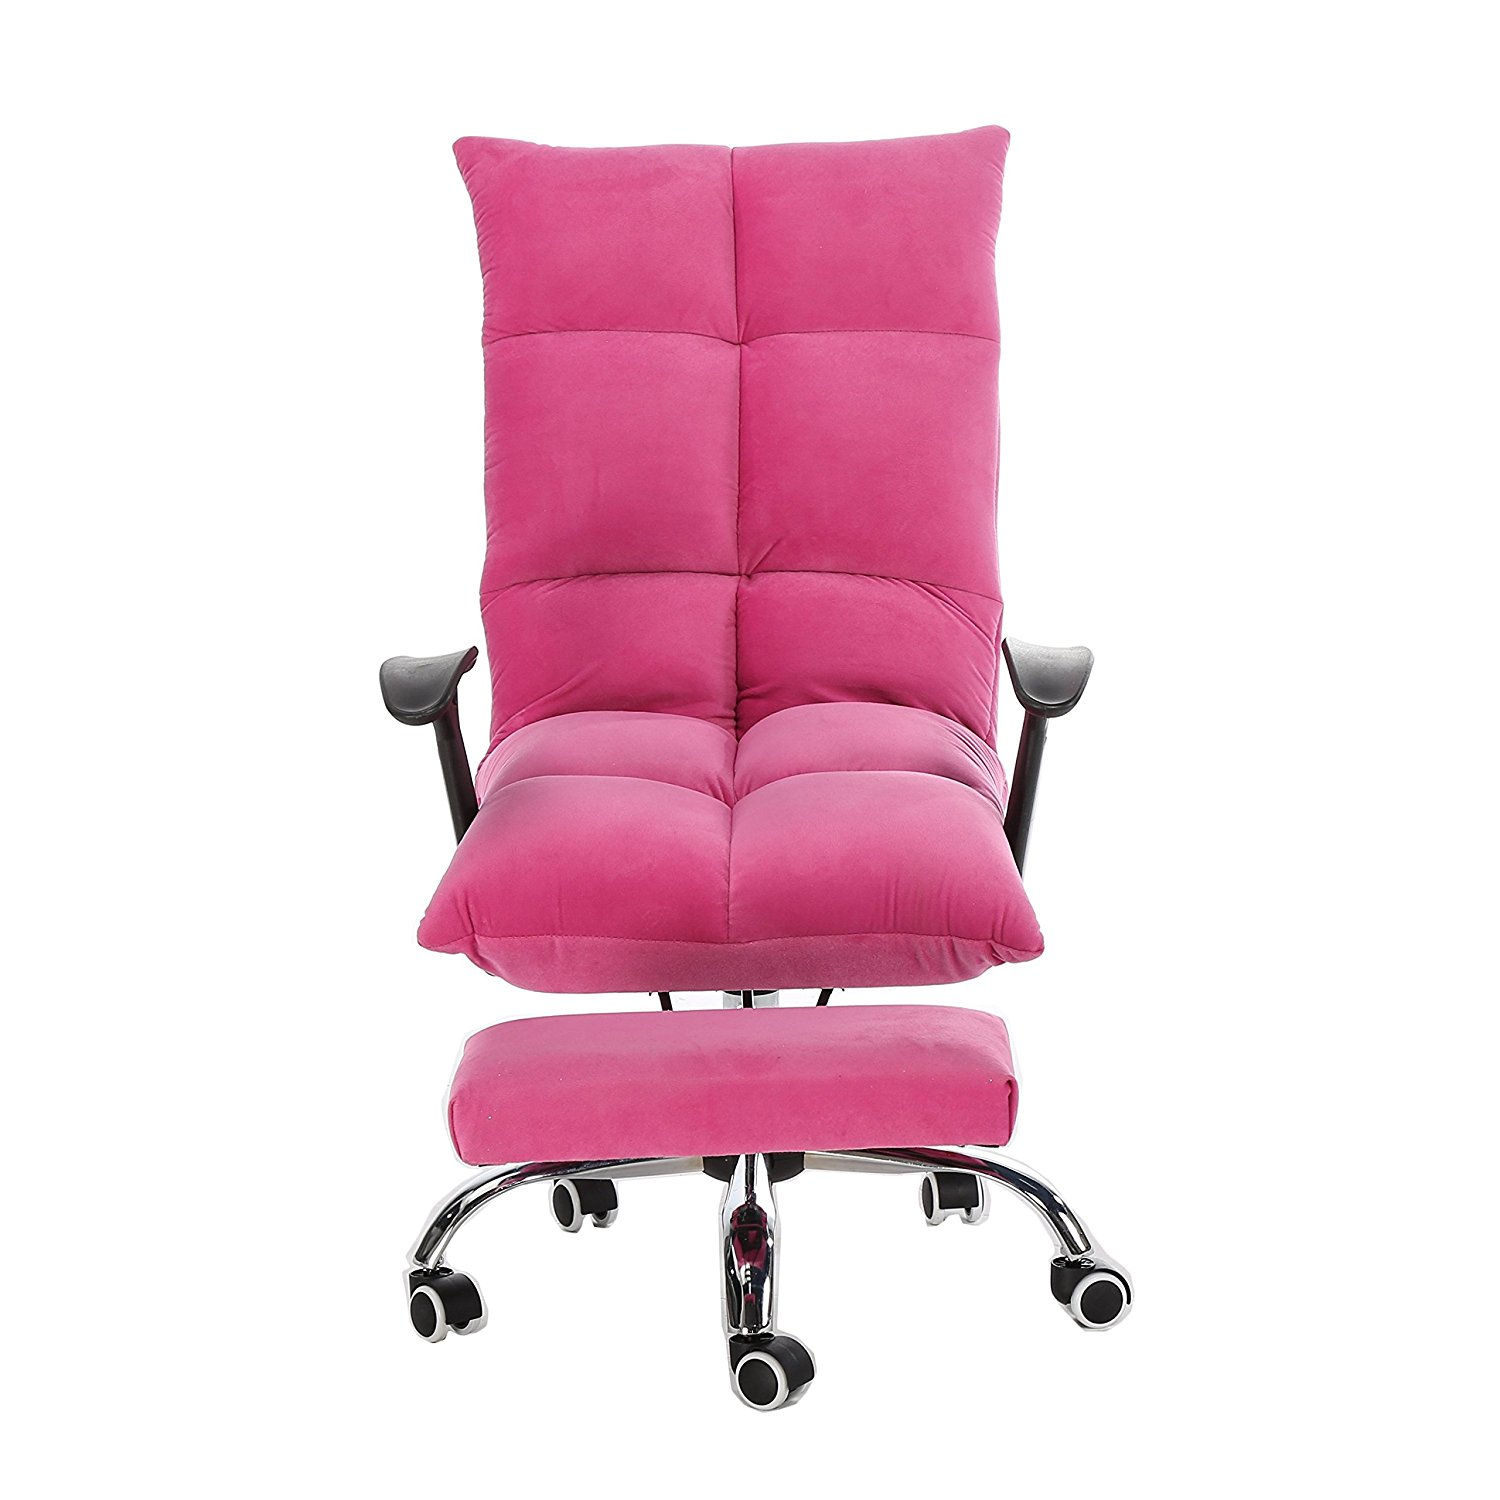 Magshion Fashion 5 Position Mul Functional Tatami Home Office Computer Desk  Chair With Adjustable Headrest Footrest Lay Flat Pink   Walmart.com